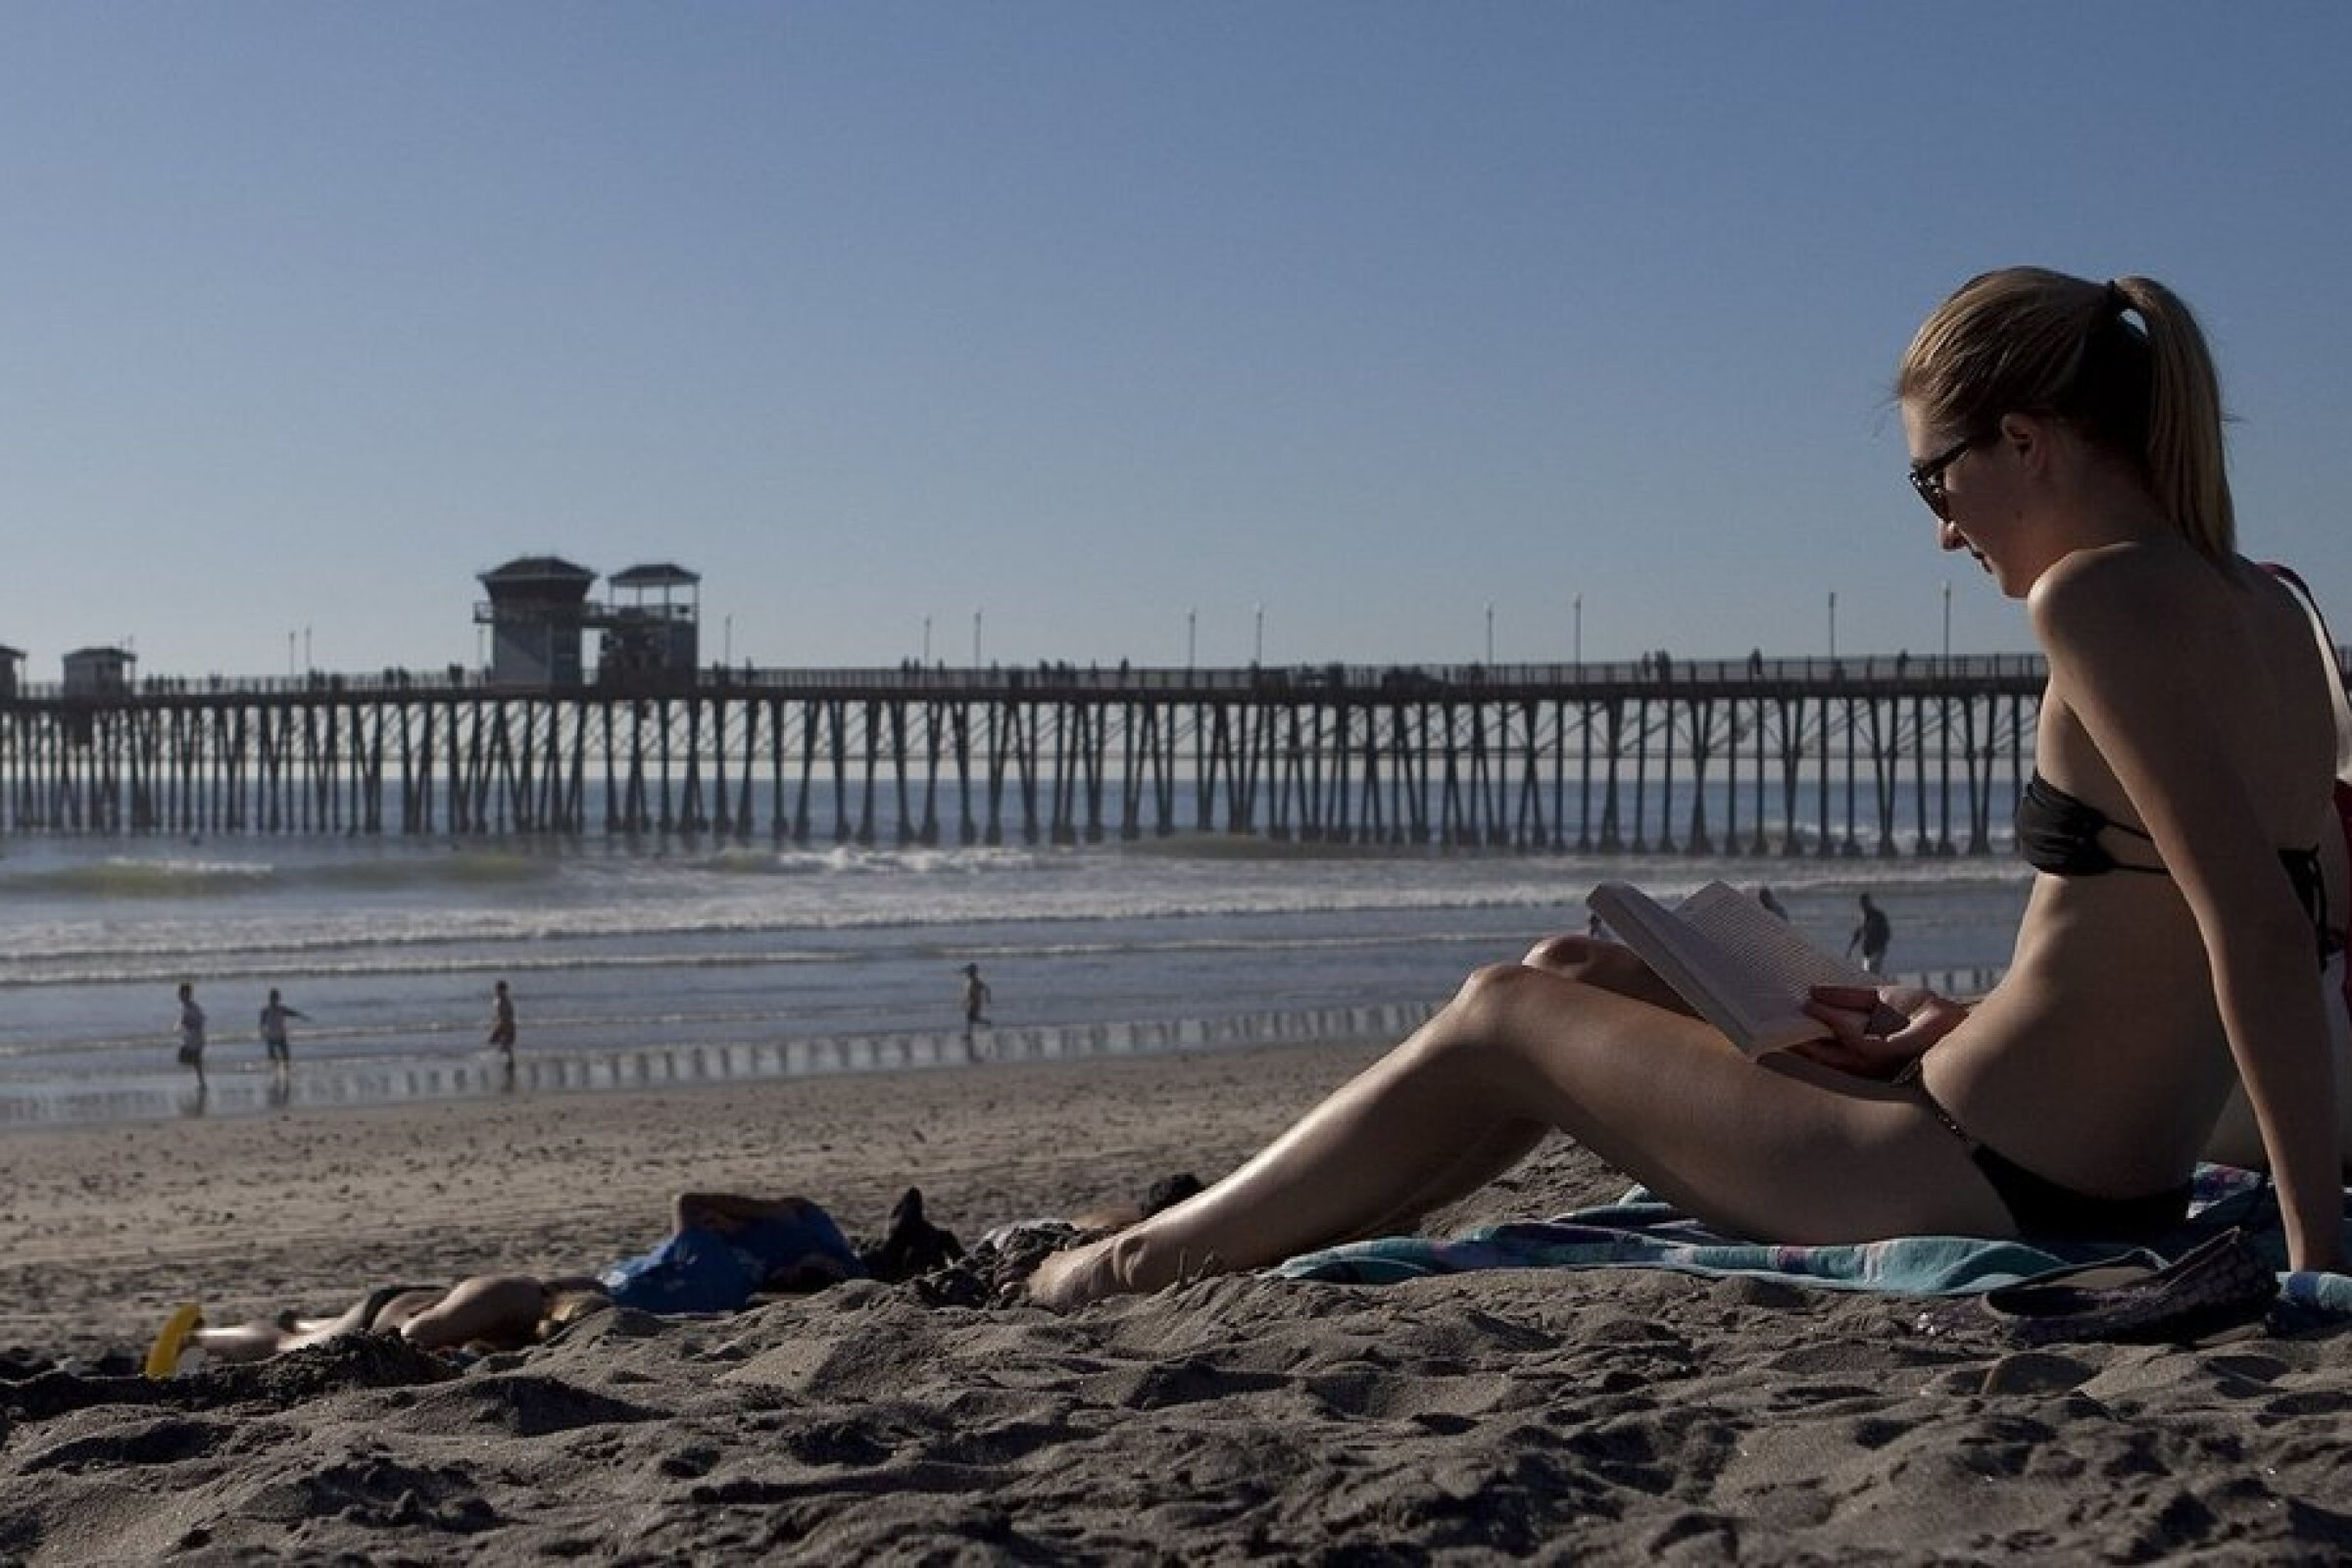 Oceanside was one of the communities with the fastest rising home prices in the first half of 2019. Pictured: Anna Schultz reads a book on the beach south of Oceanside Pier.